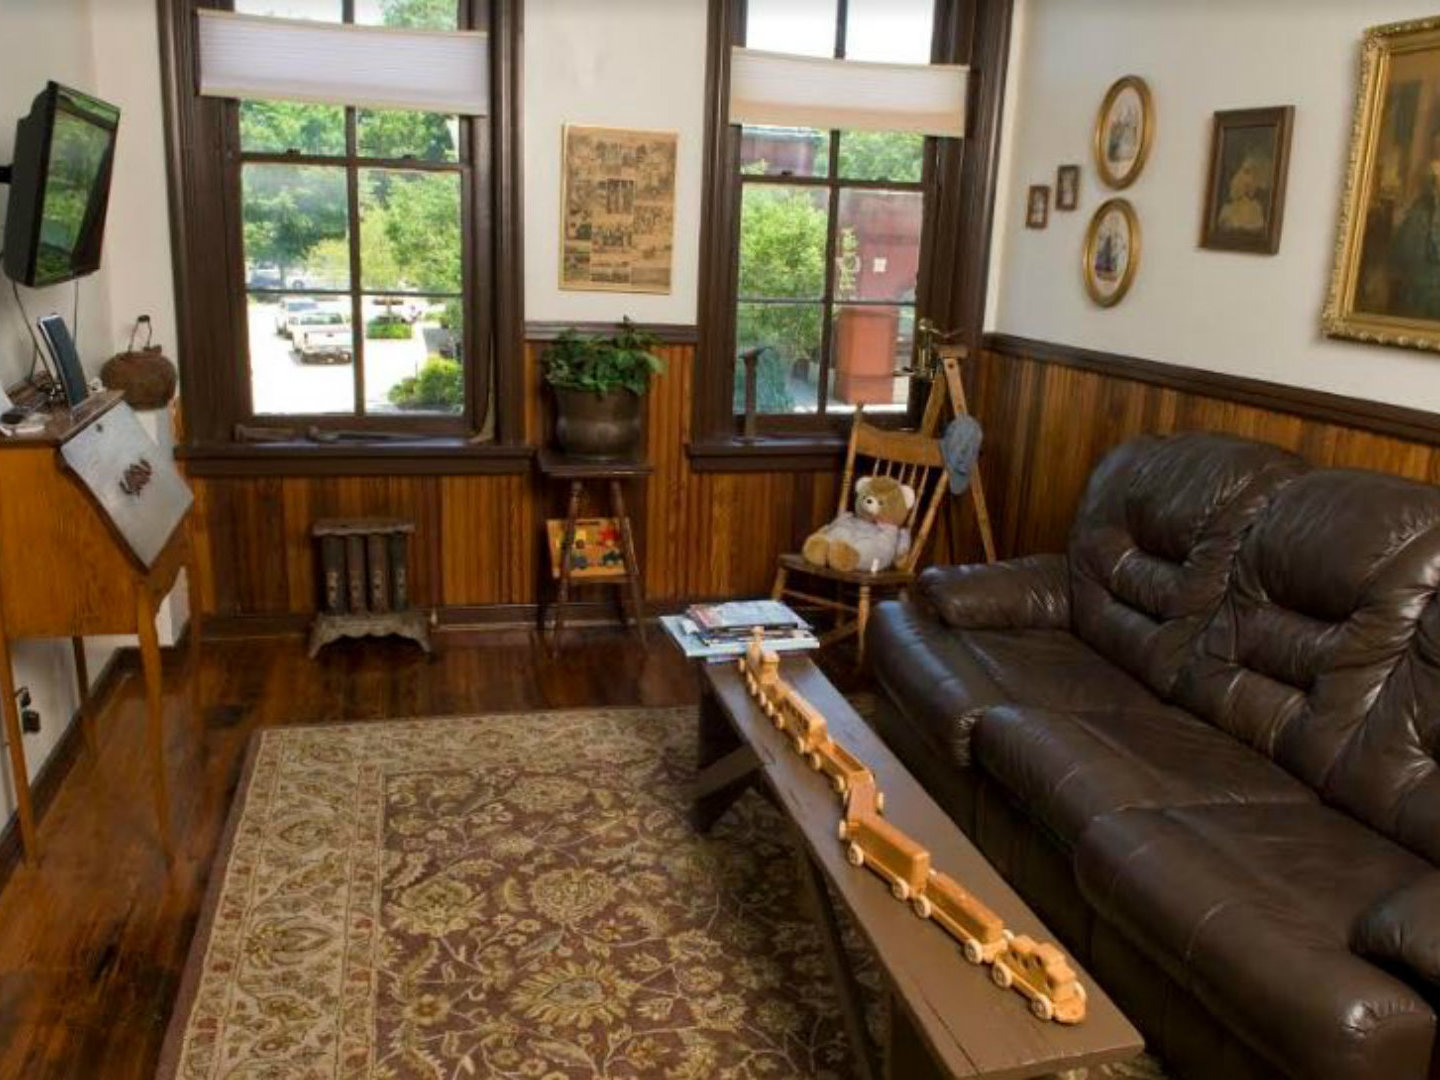 A living room filled with furniture and a large window at Tinder Guest House.